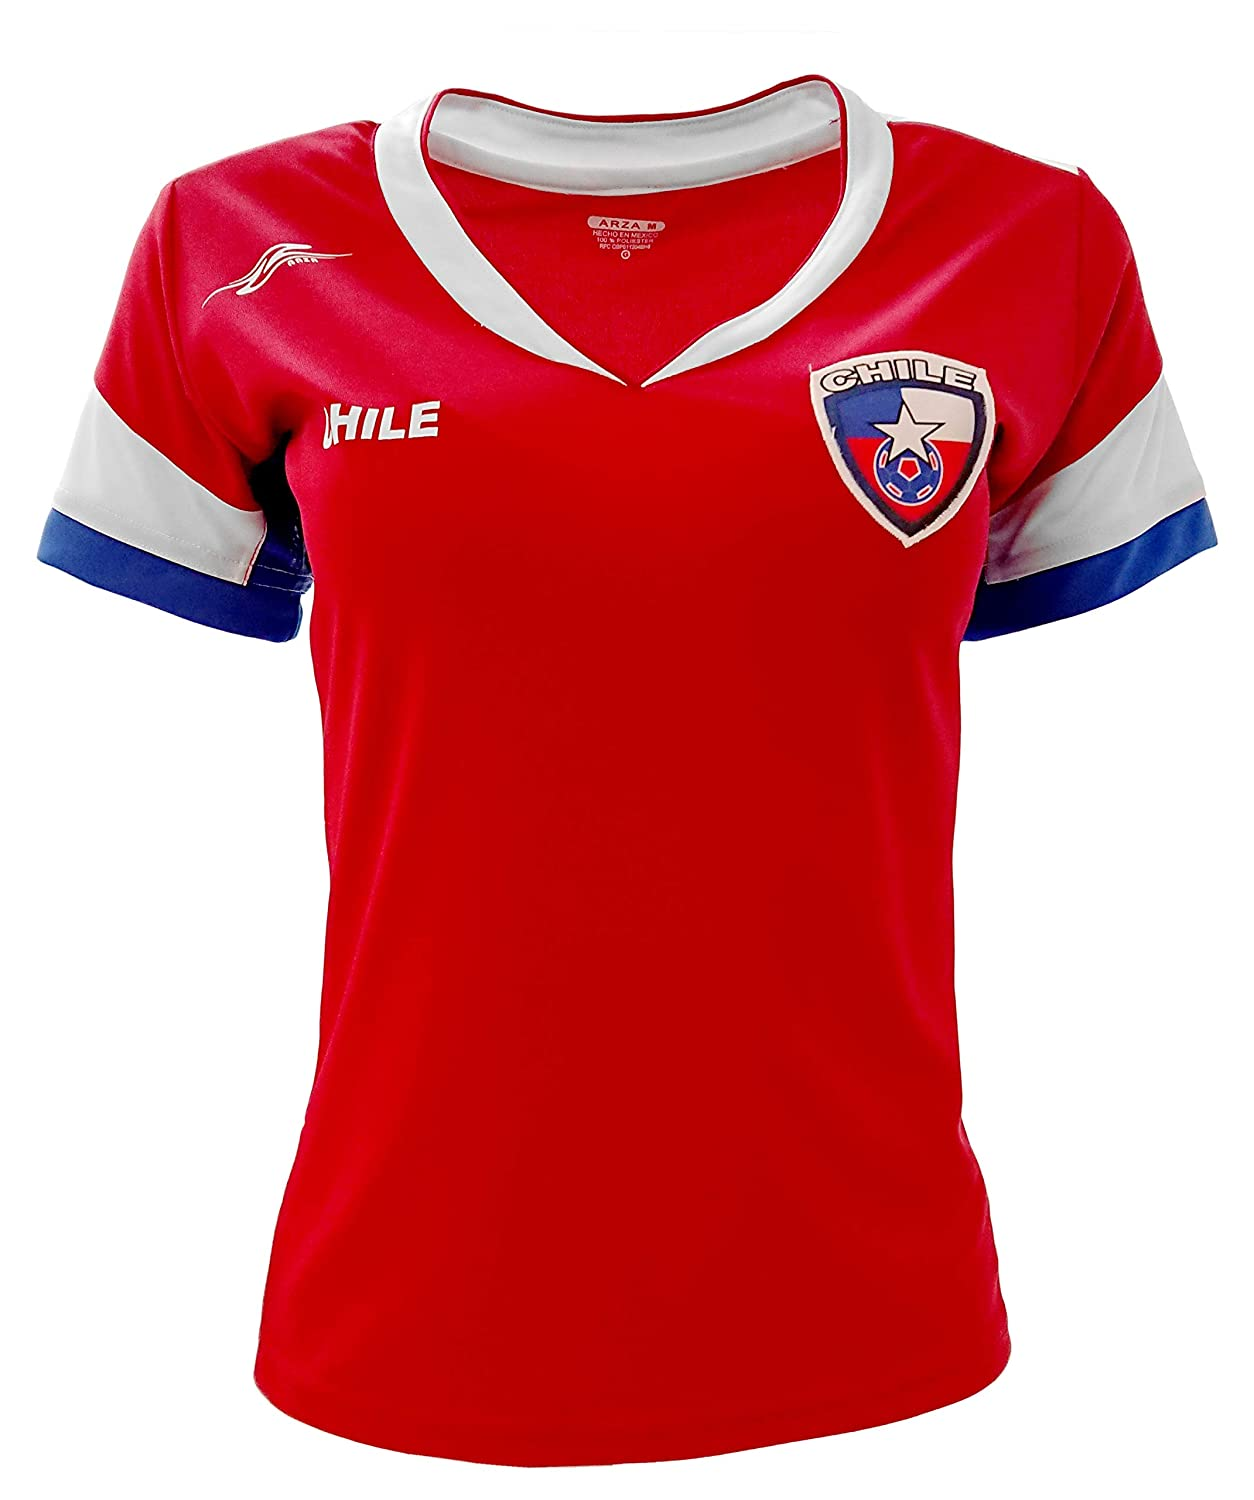 b7f3102be Chile New Arza Women Jersey Red Slim Fit with V Neck 100% Polyester ...